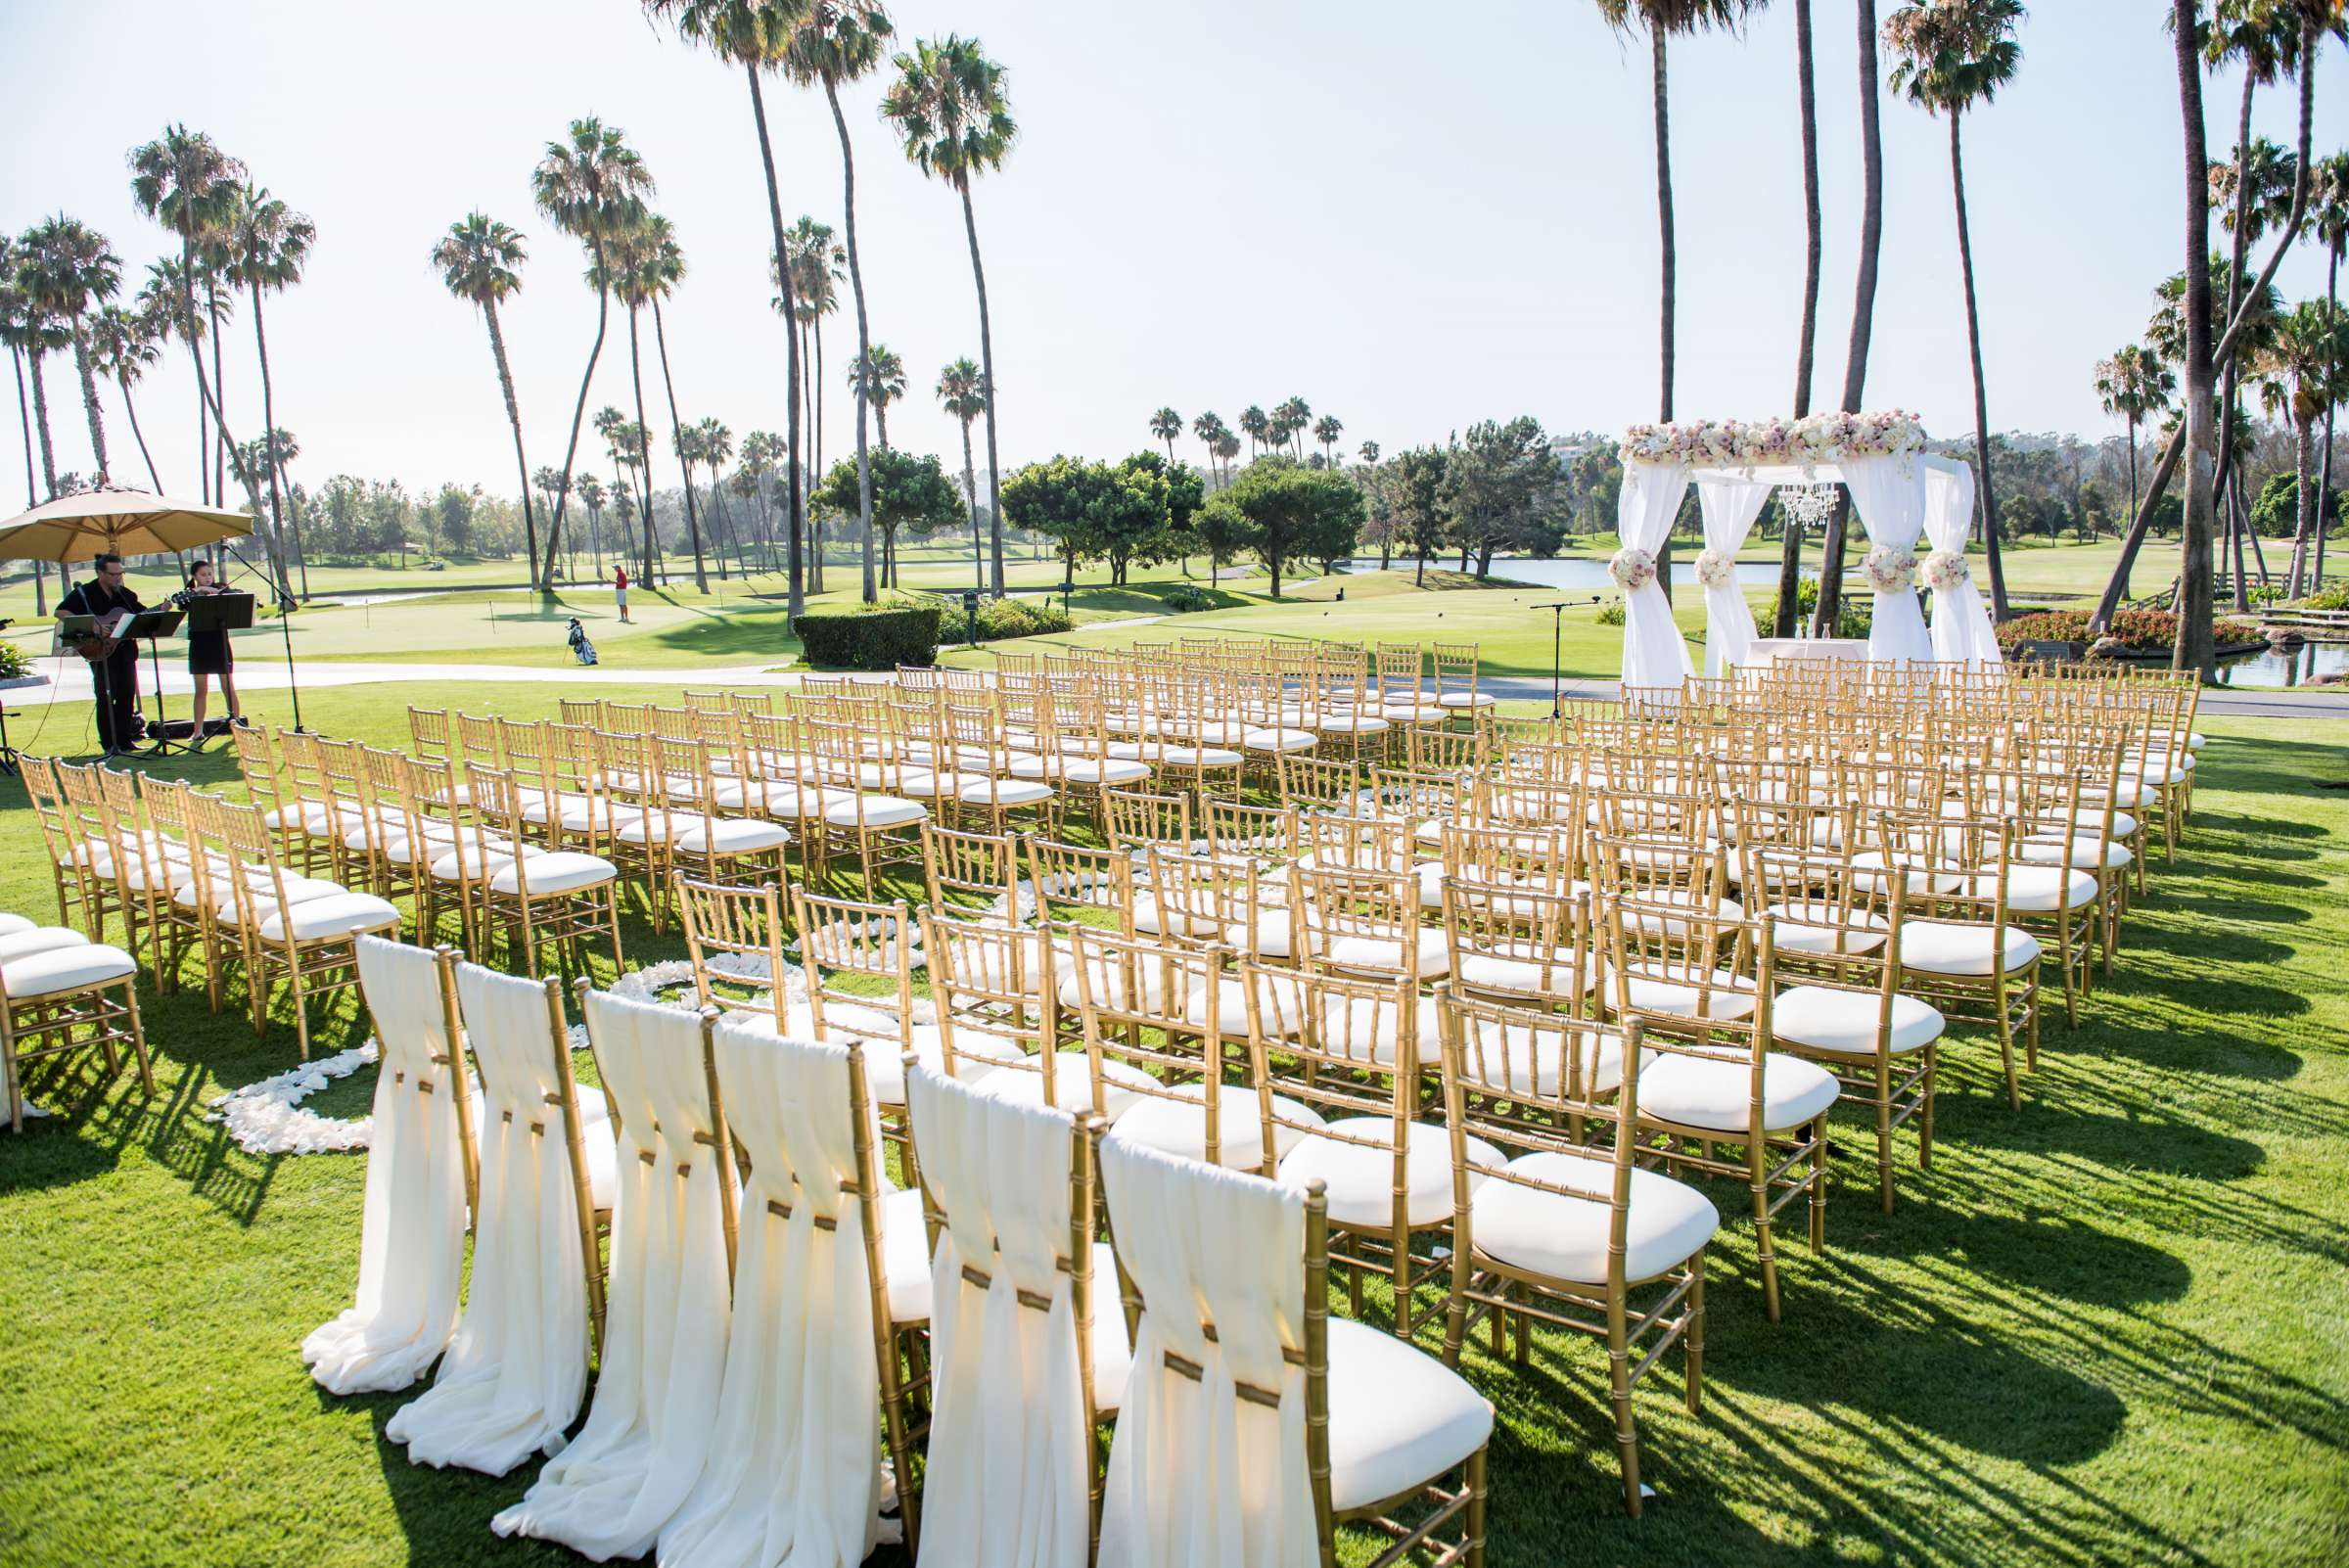 Fairbanks Ranch Country Club Wedding coordinated by Monarch Weddings, Gabriella and Kyle Wedding Photo #177 by True Photography